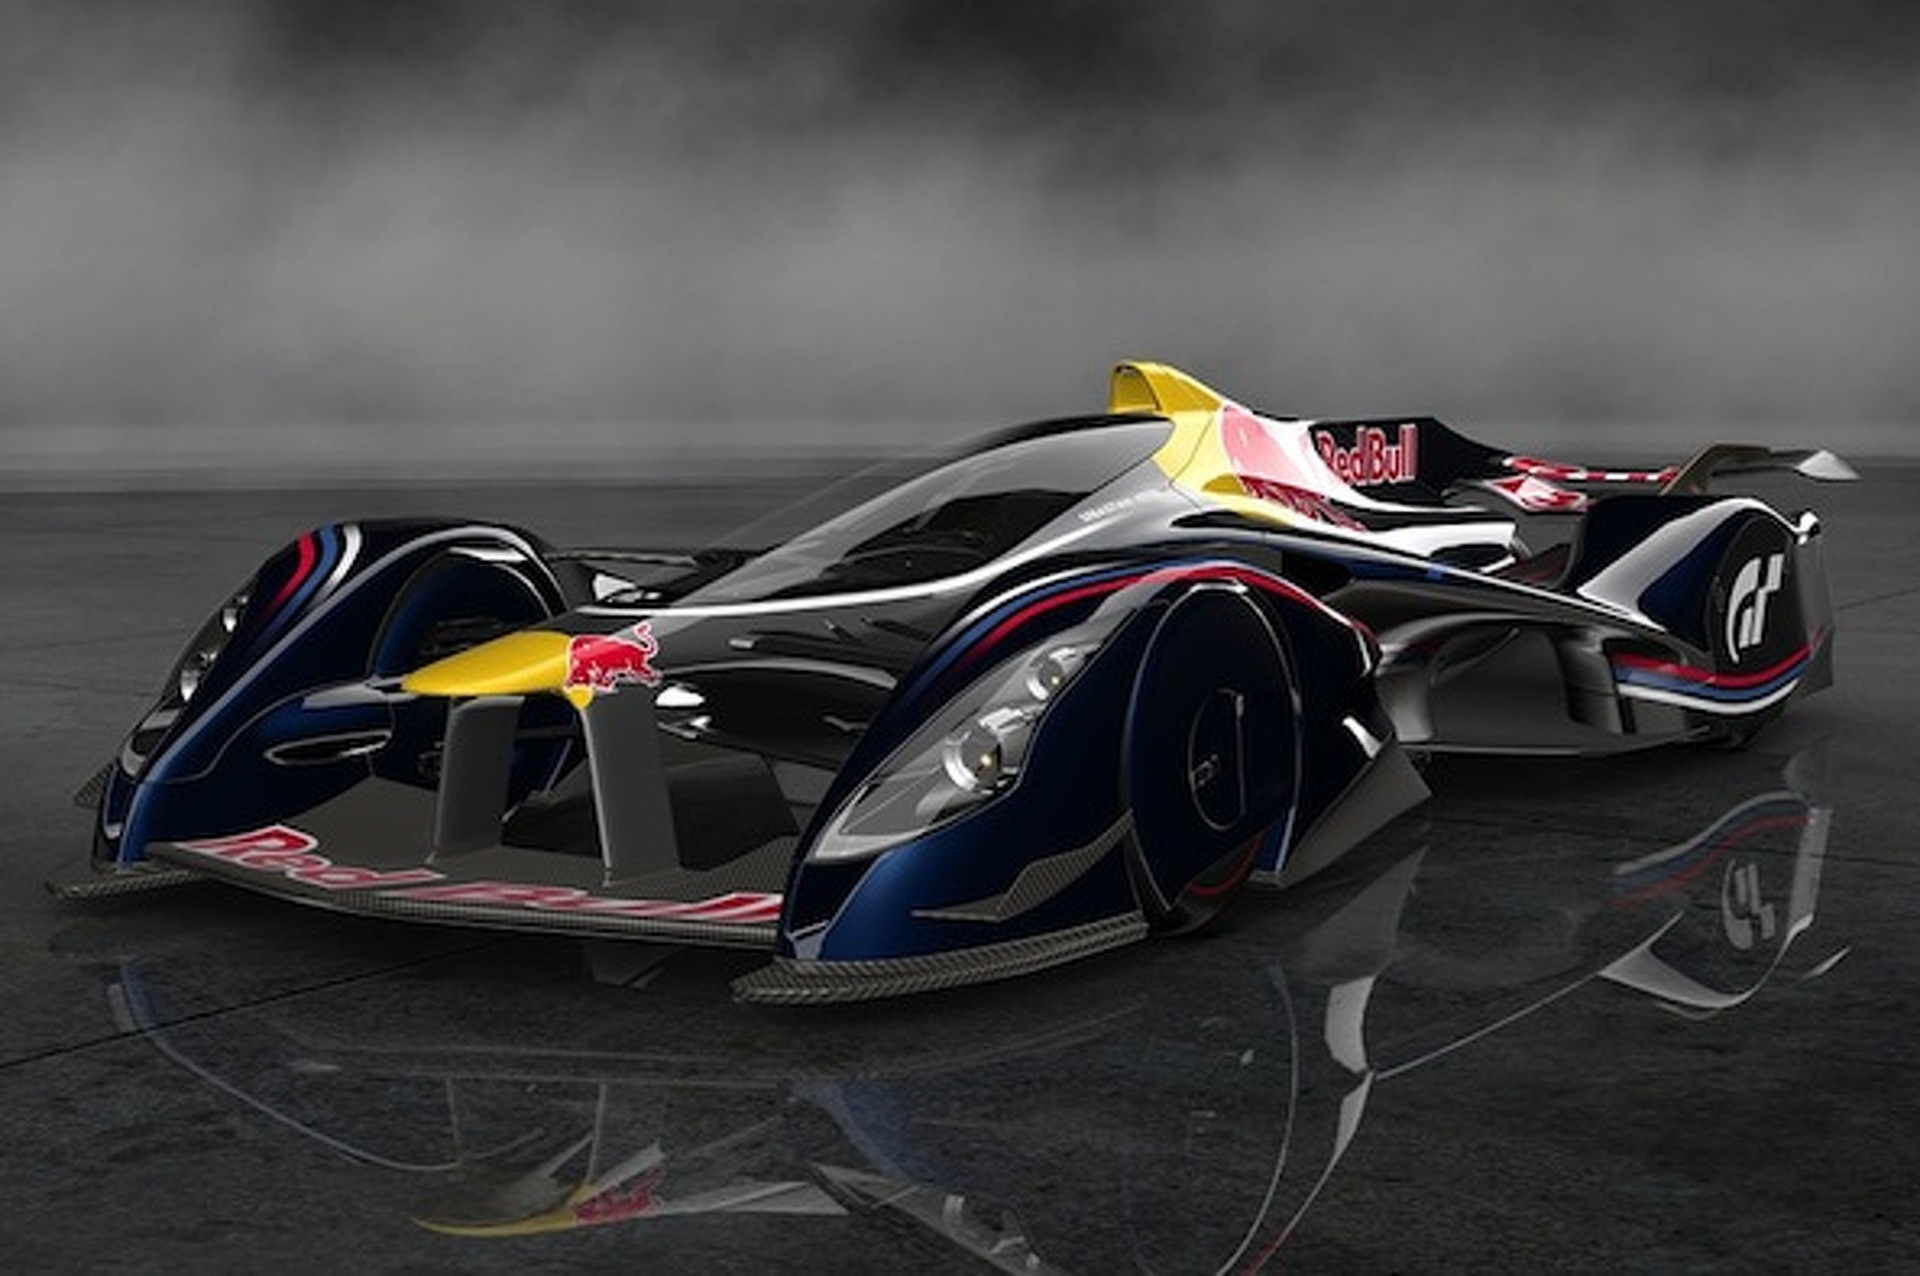 GT6 Red Bull X2014 Concept is Scary Fast, Scary Cool